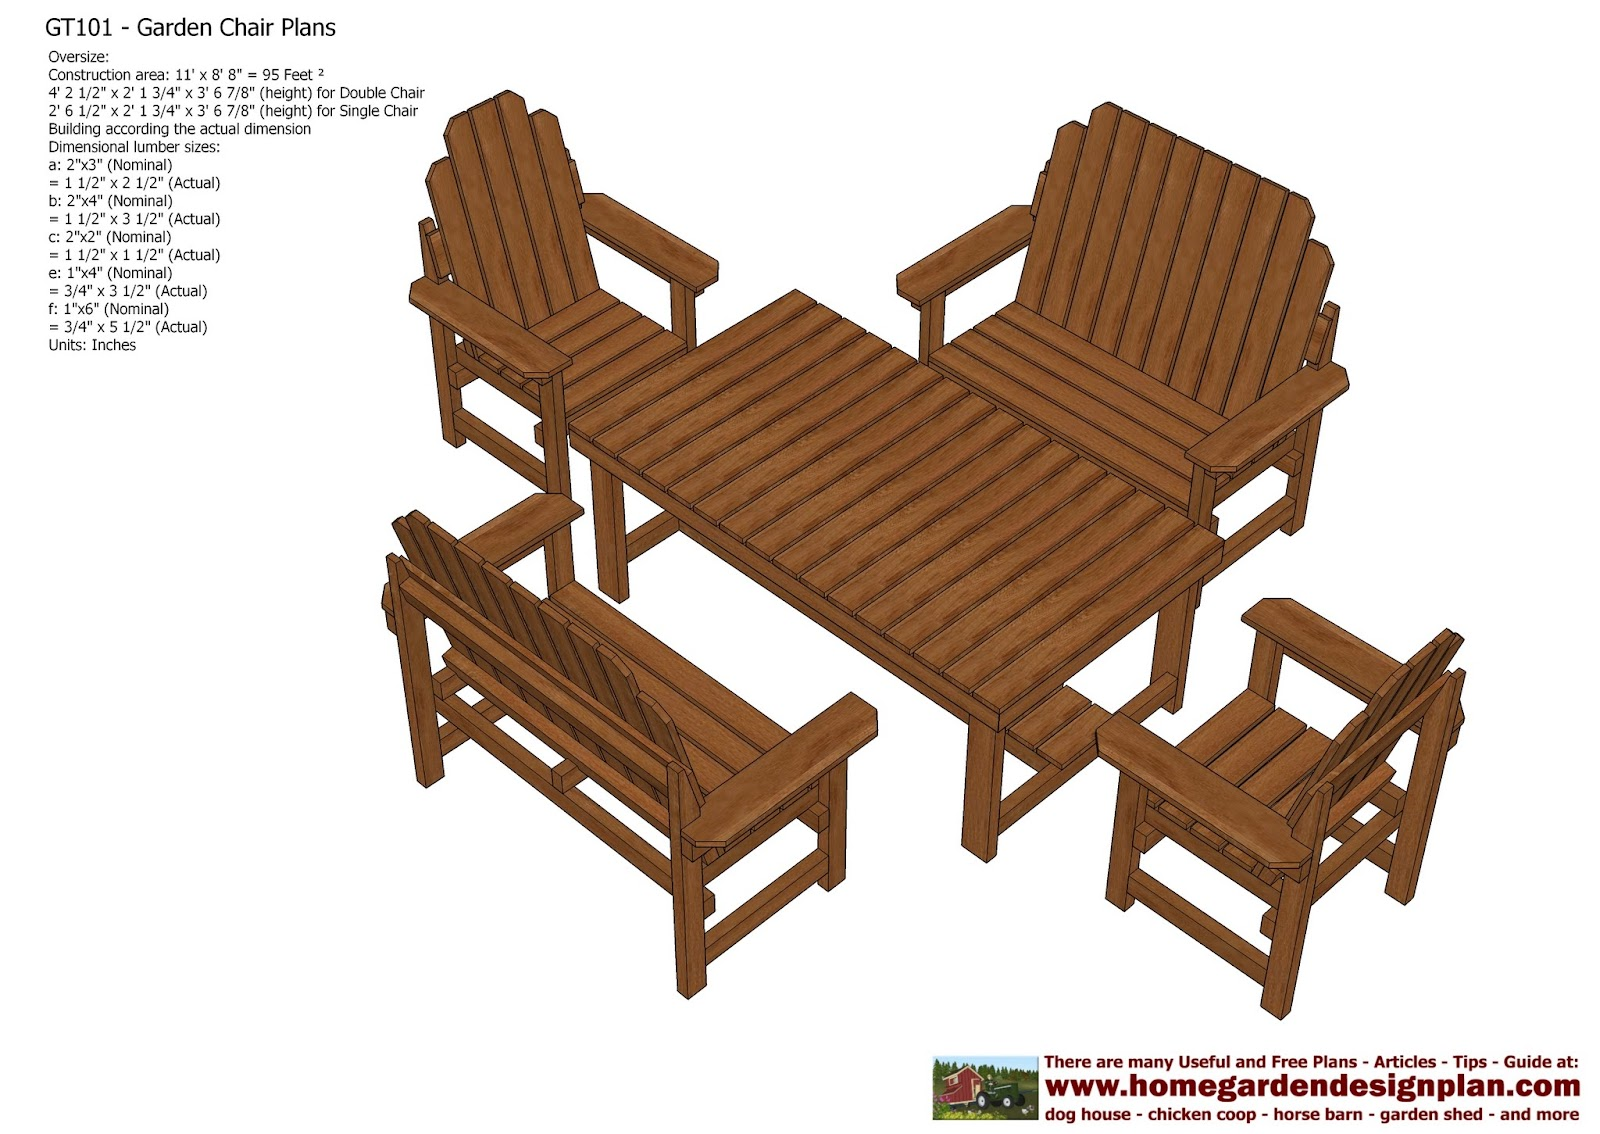 Home garden plans gt101 garden teak table plans out - Woodworking plans bedroom furniture ...